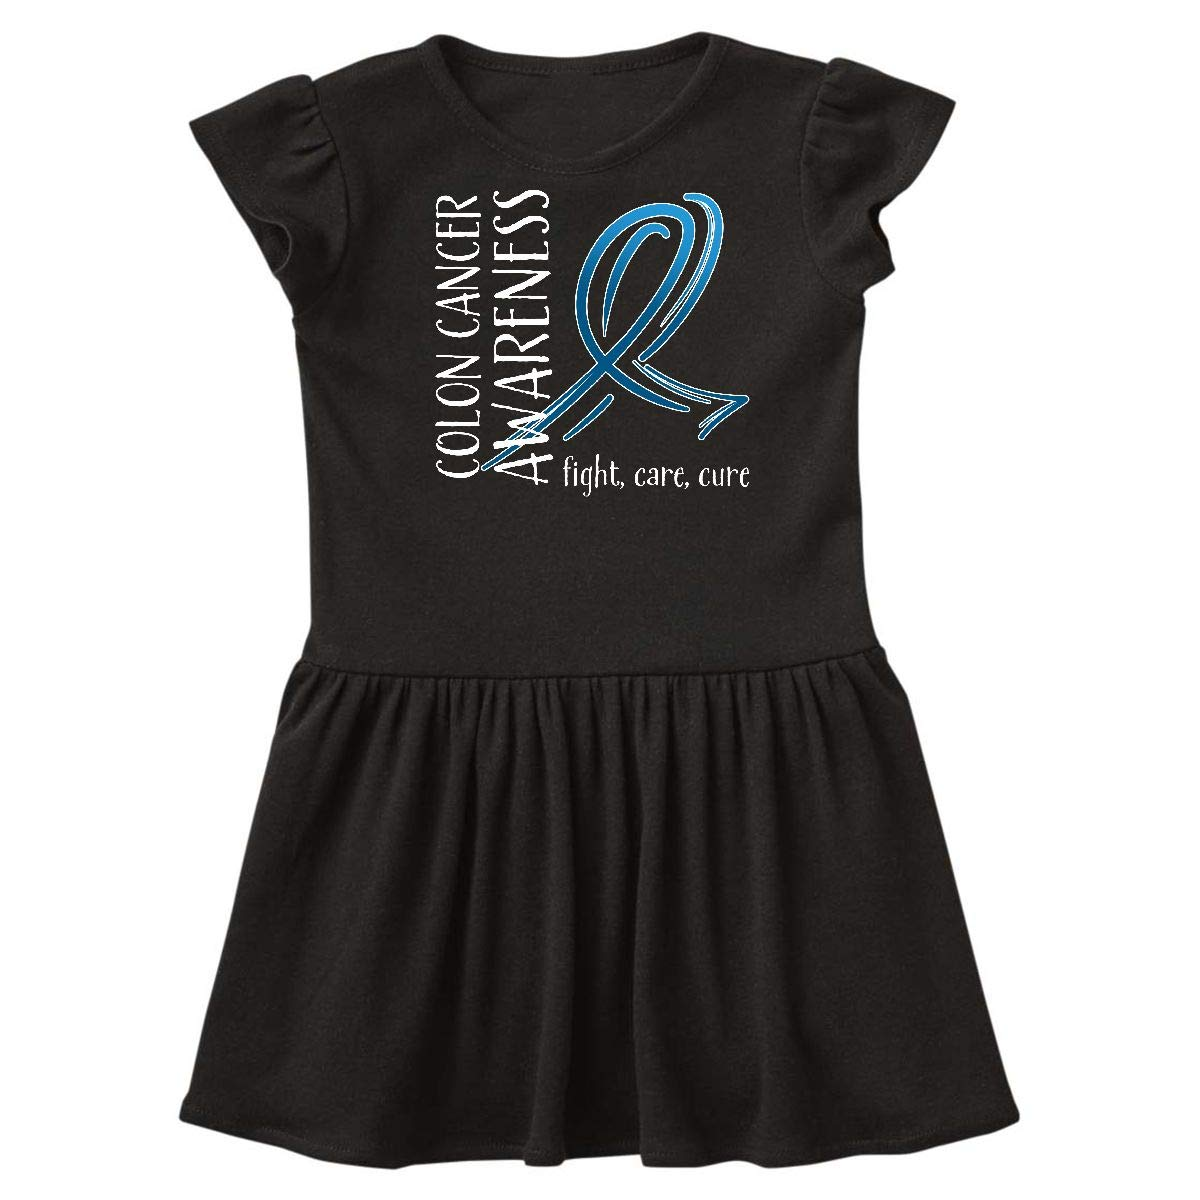 Amazon Com Inktastic Colon Cancer Awareness Fight Care Cure Toddler Dress Clothing